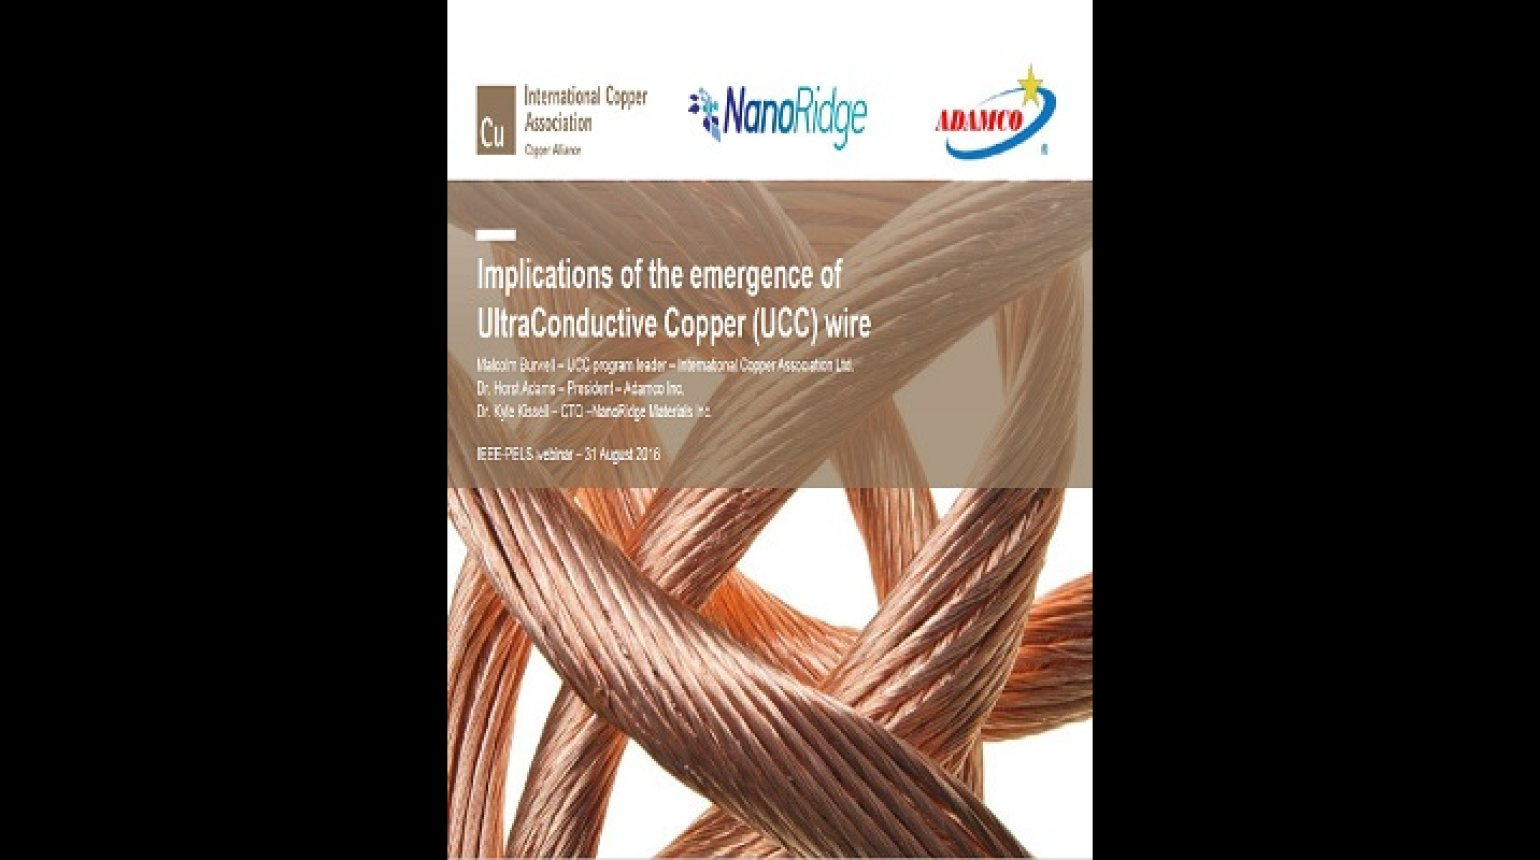 Implications of the emergence of UltraConductive Copper (UCC) wire Video